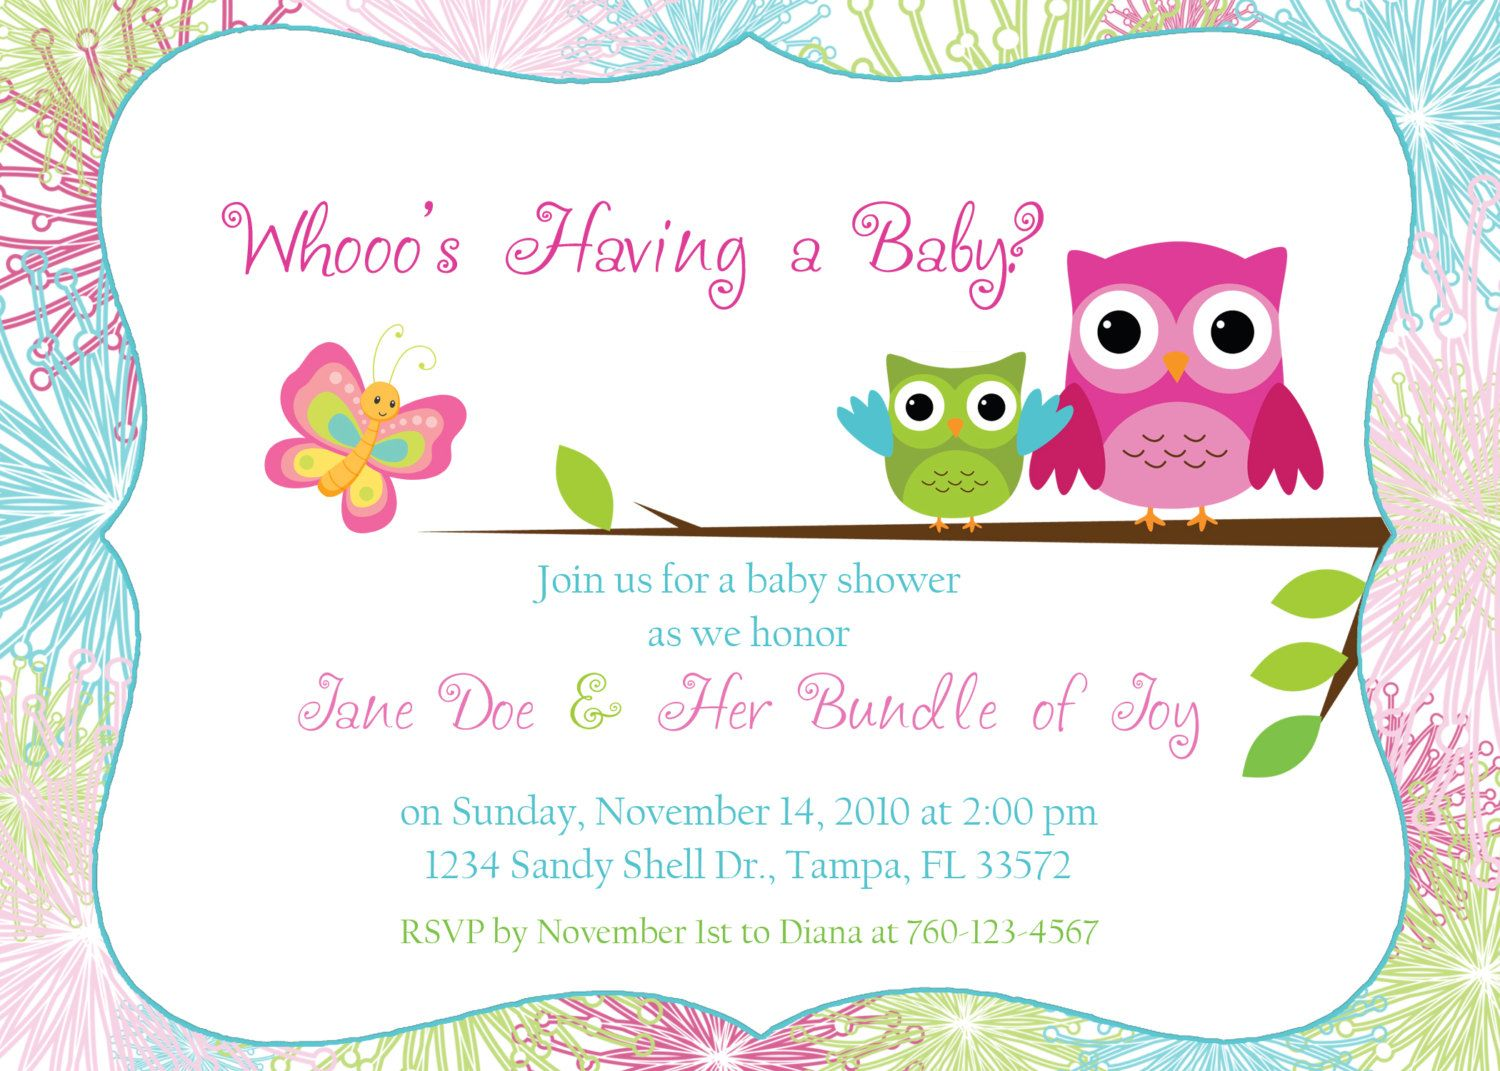 Owl baby shower invitation digital image shower invitations and owl baby shower invitation by designsbyoccasion on etsy 1600 stopboris Gallery